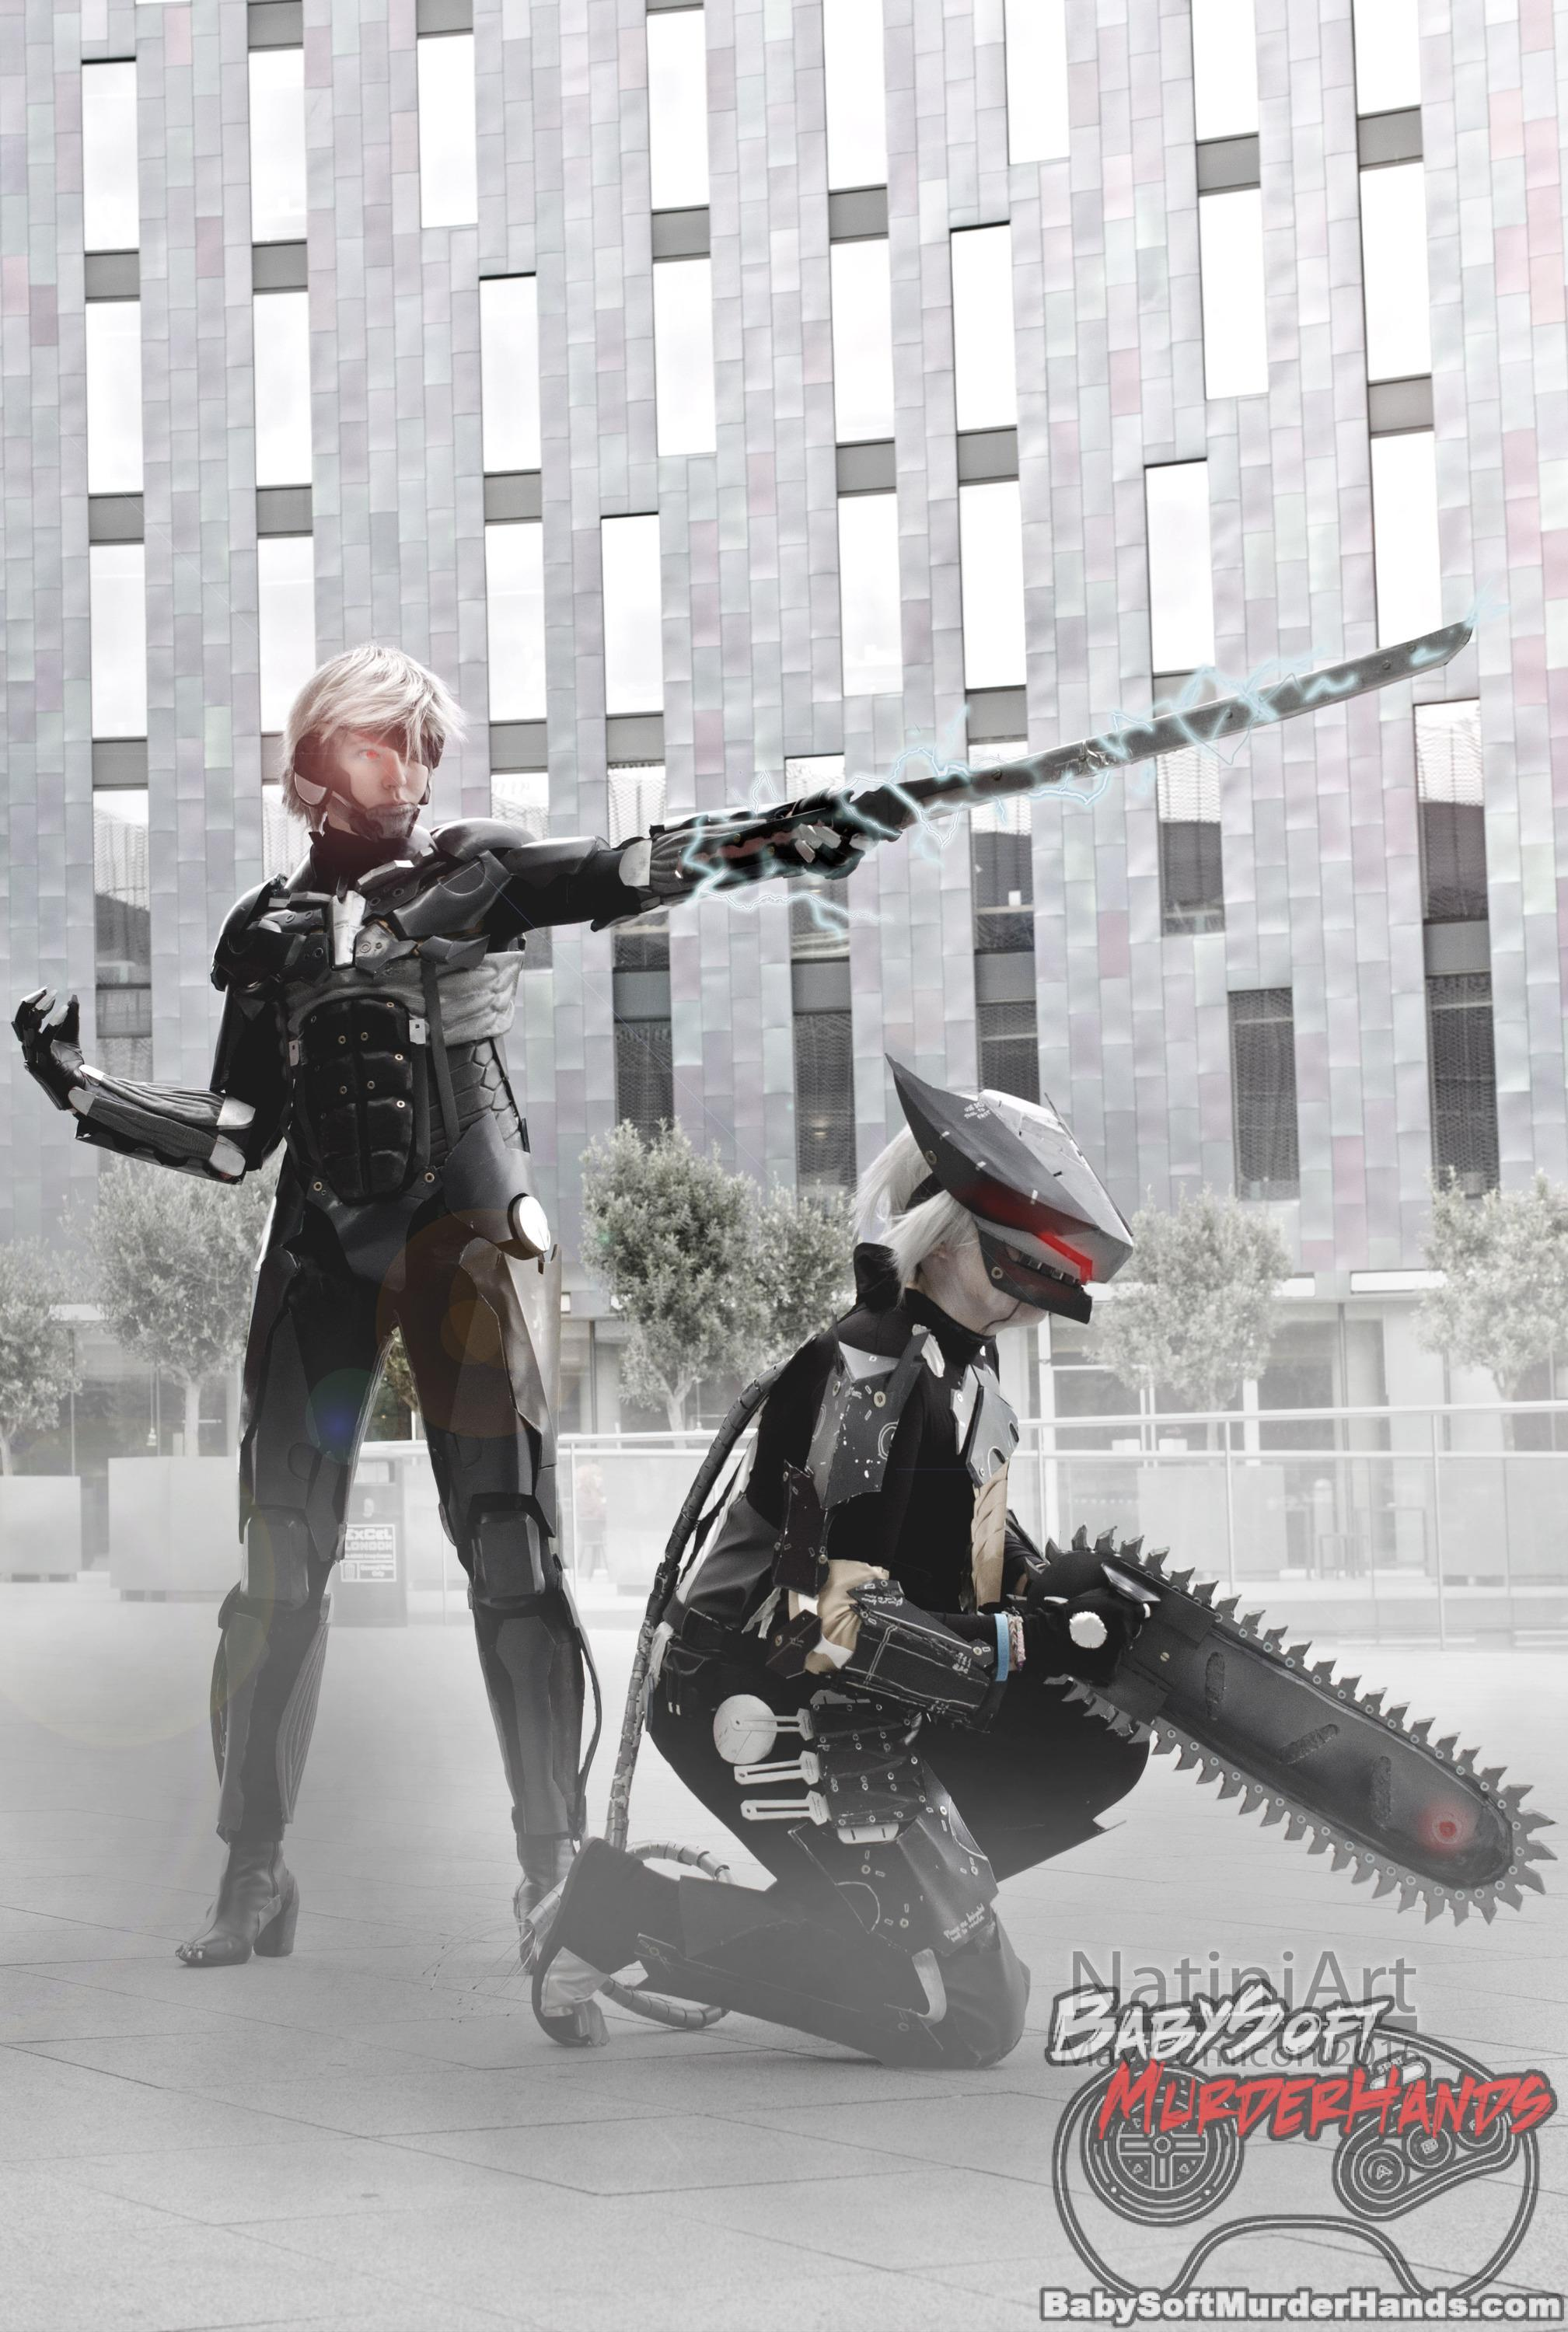 Raiden and Bladewolf from Metal Gear Rising: Revengeance Cosplay by Natalie Williams (Natini) and Sophie